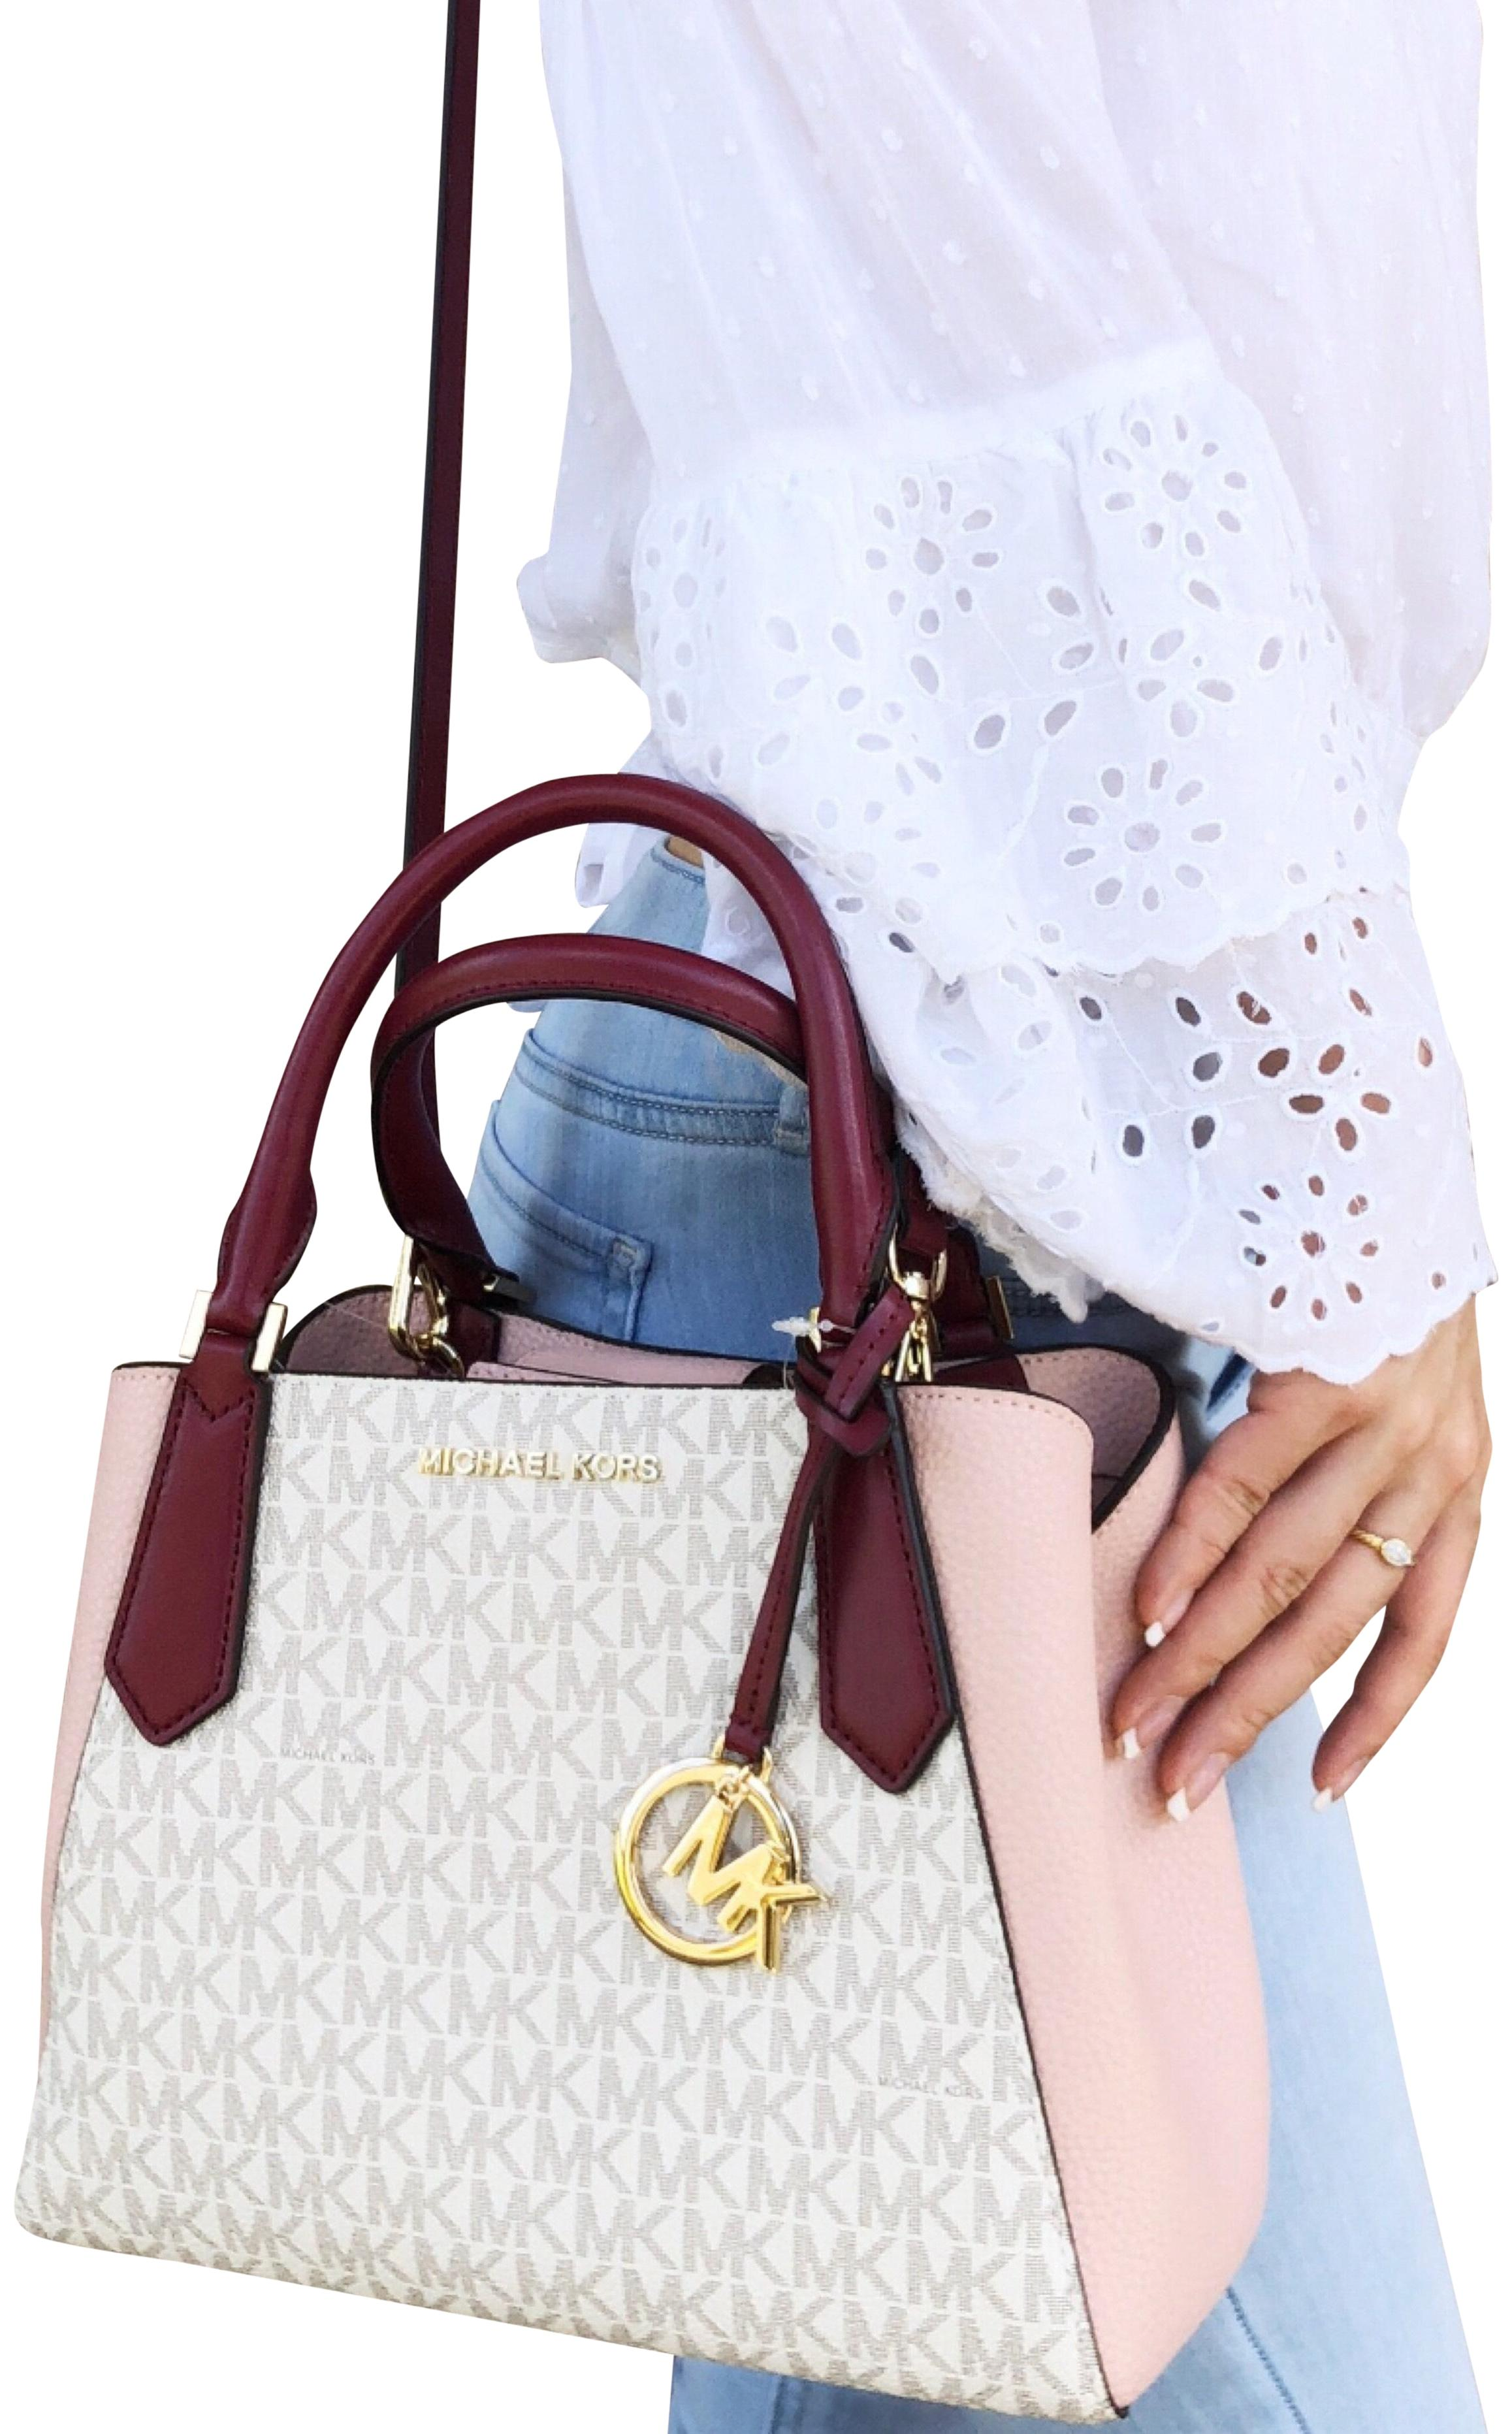 bf0f680a935 ... discount code for michael kors kimberly mk signature crossbody satchel  in mulberry pastel pink b5a77 e5cd4